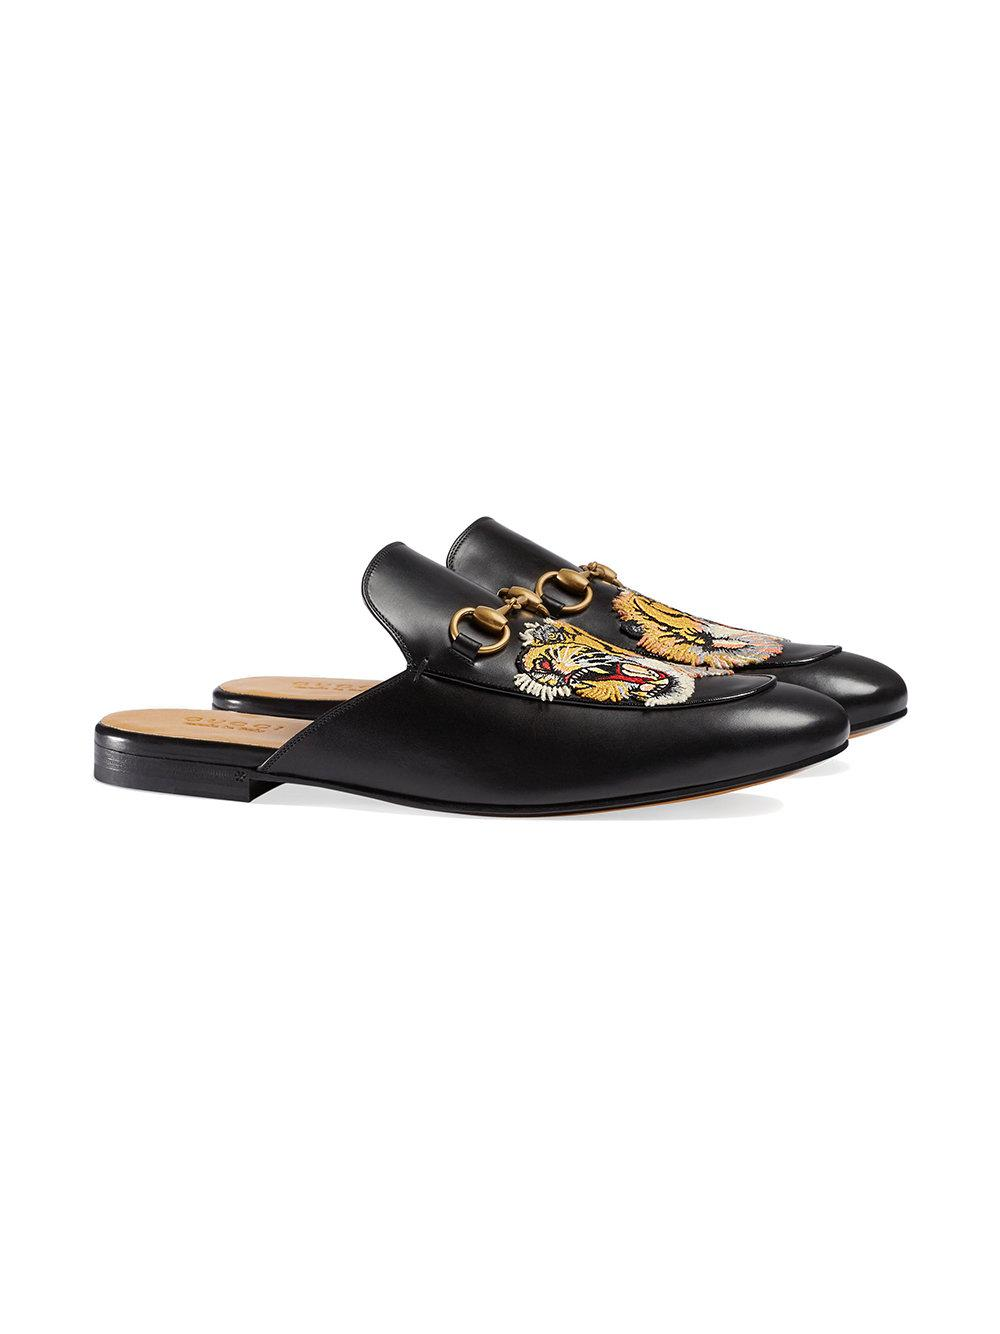 0d2009f123c Lyst - Gucci Princetown Embroidered Slippers in Black for Men